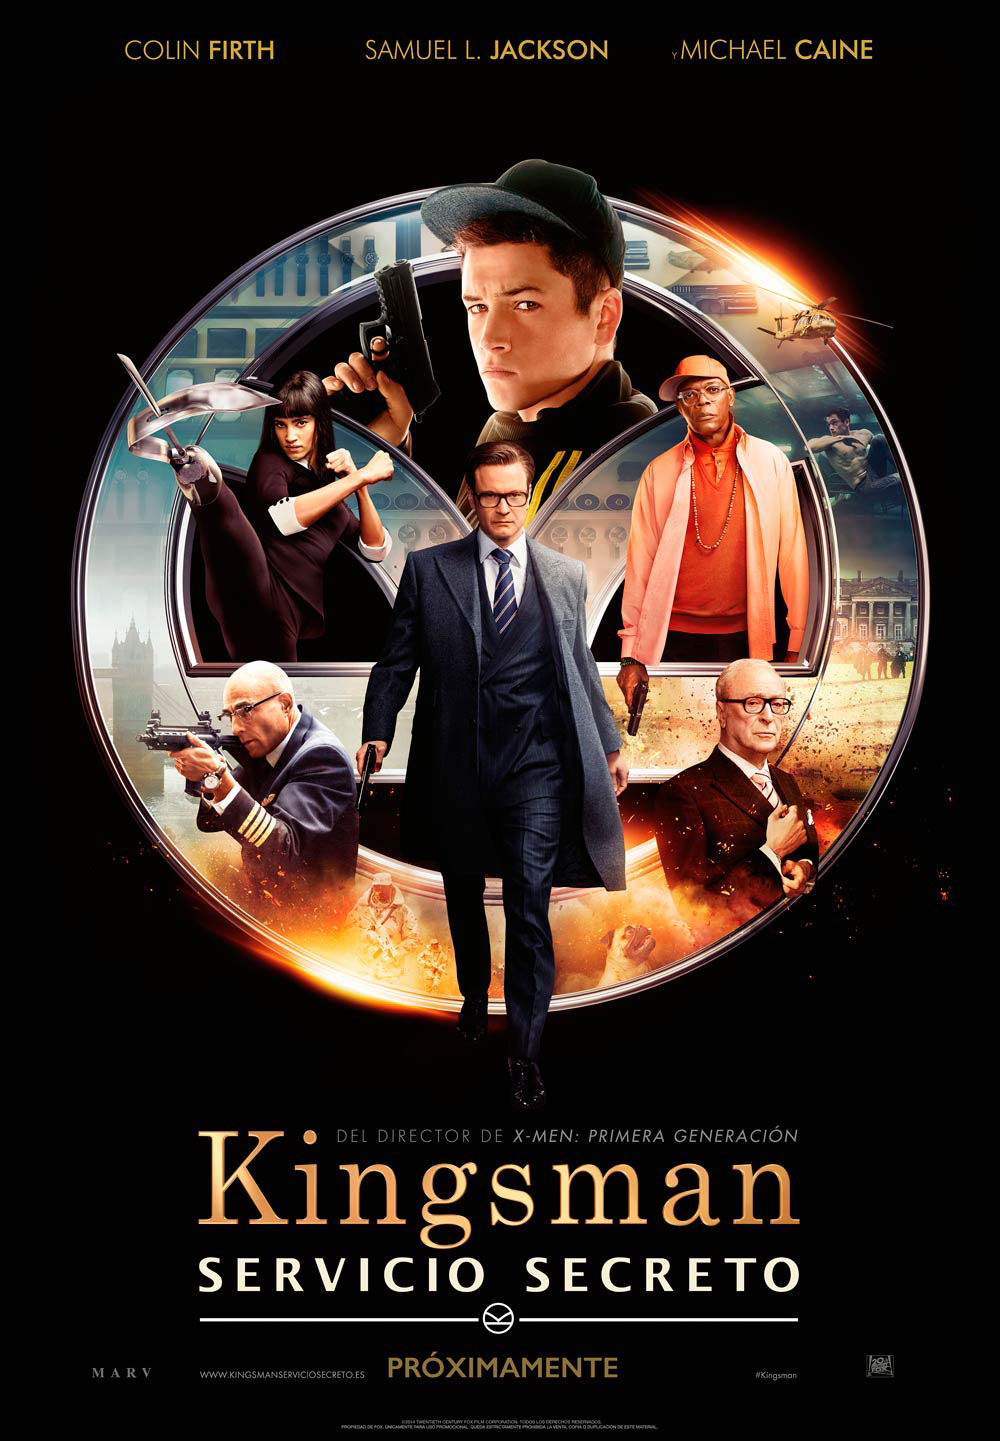 Kingsman-Servicio-secreto-Cartel